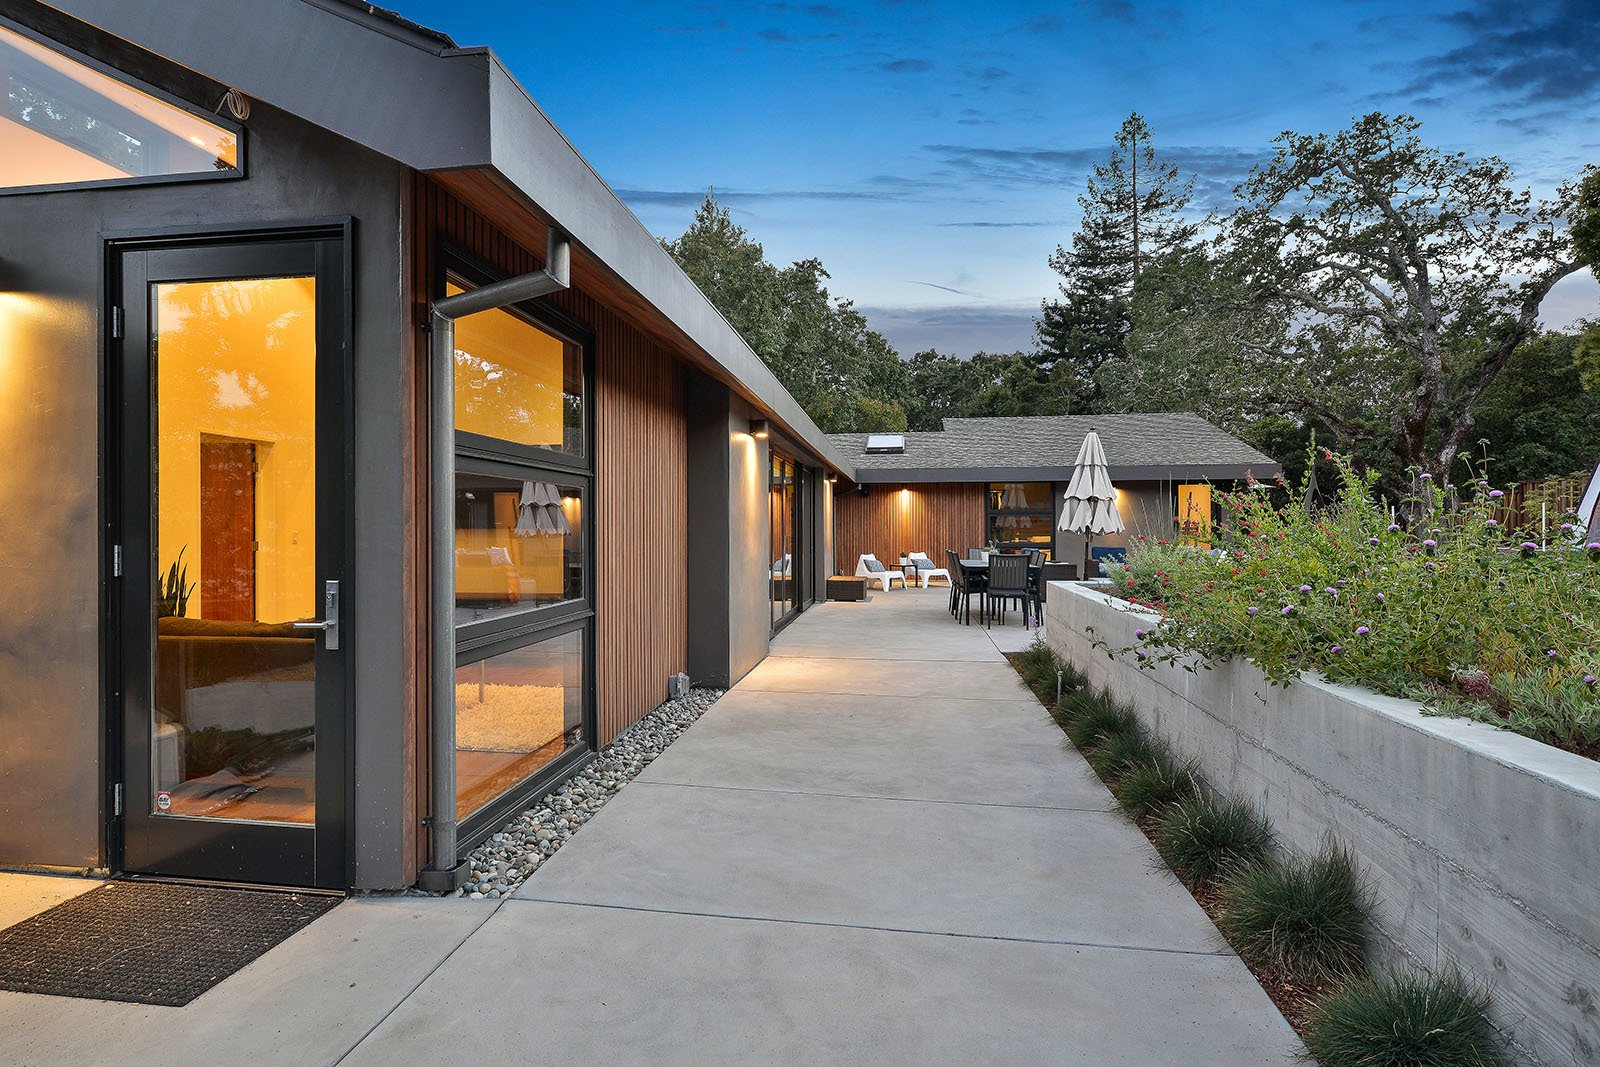 Rear yard  Tagged: Outdoor, Back Yard, Concrete Patio, Porch, Deck, and Walkways.  Portola Valley by patrick perez/designpad architecture